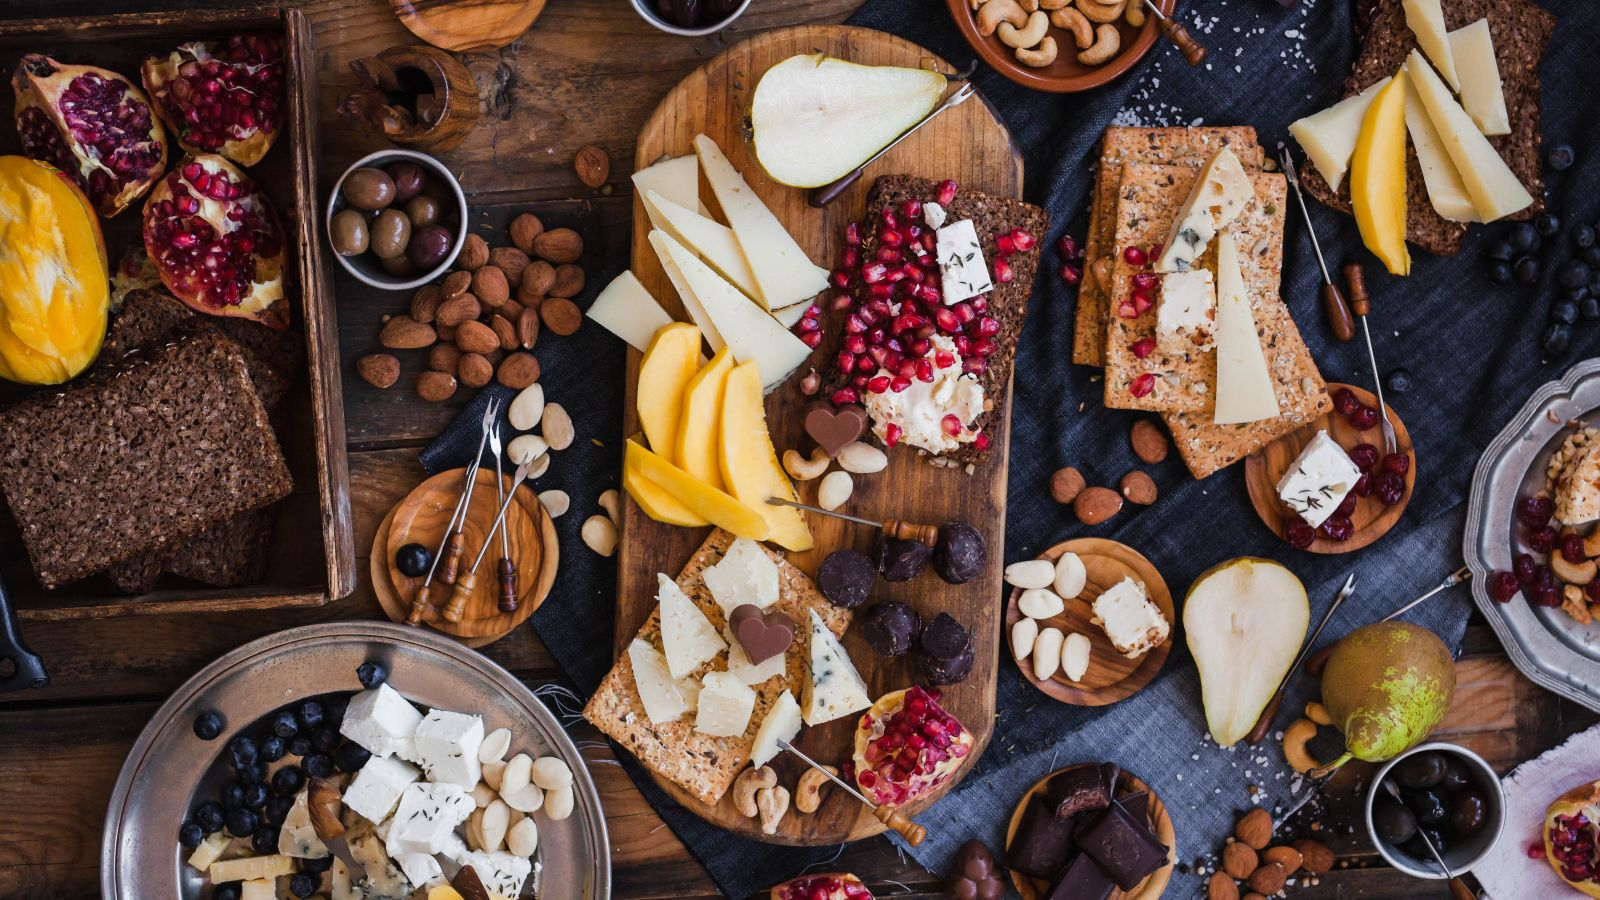 cheese board with breads and fruits